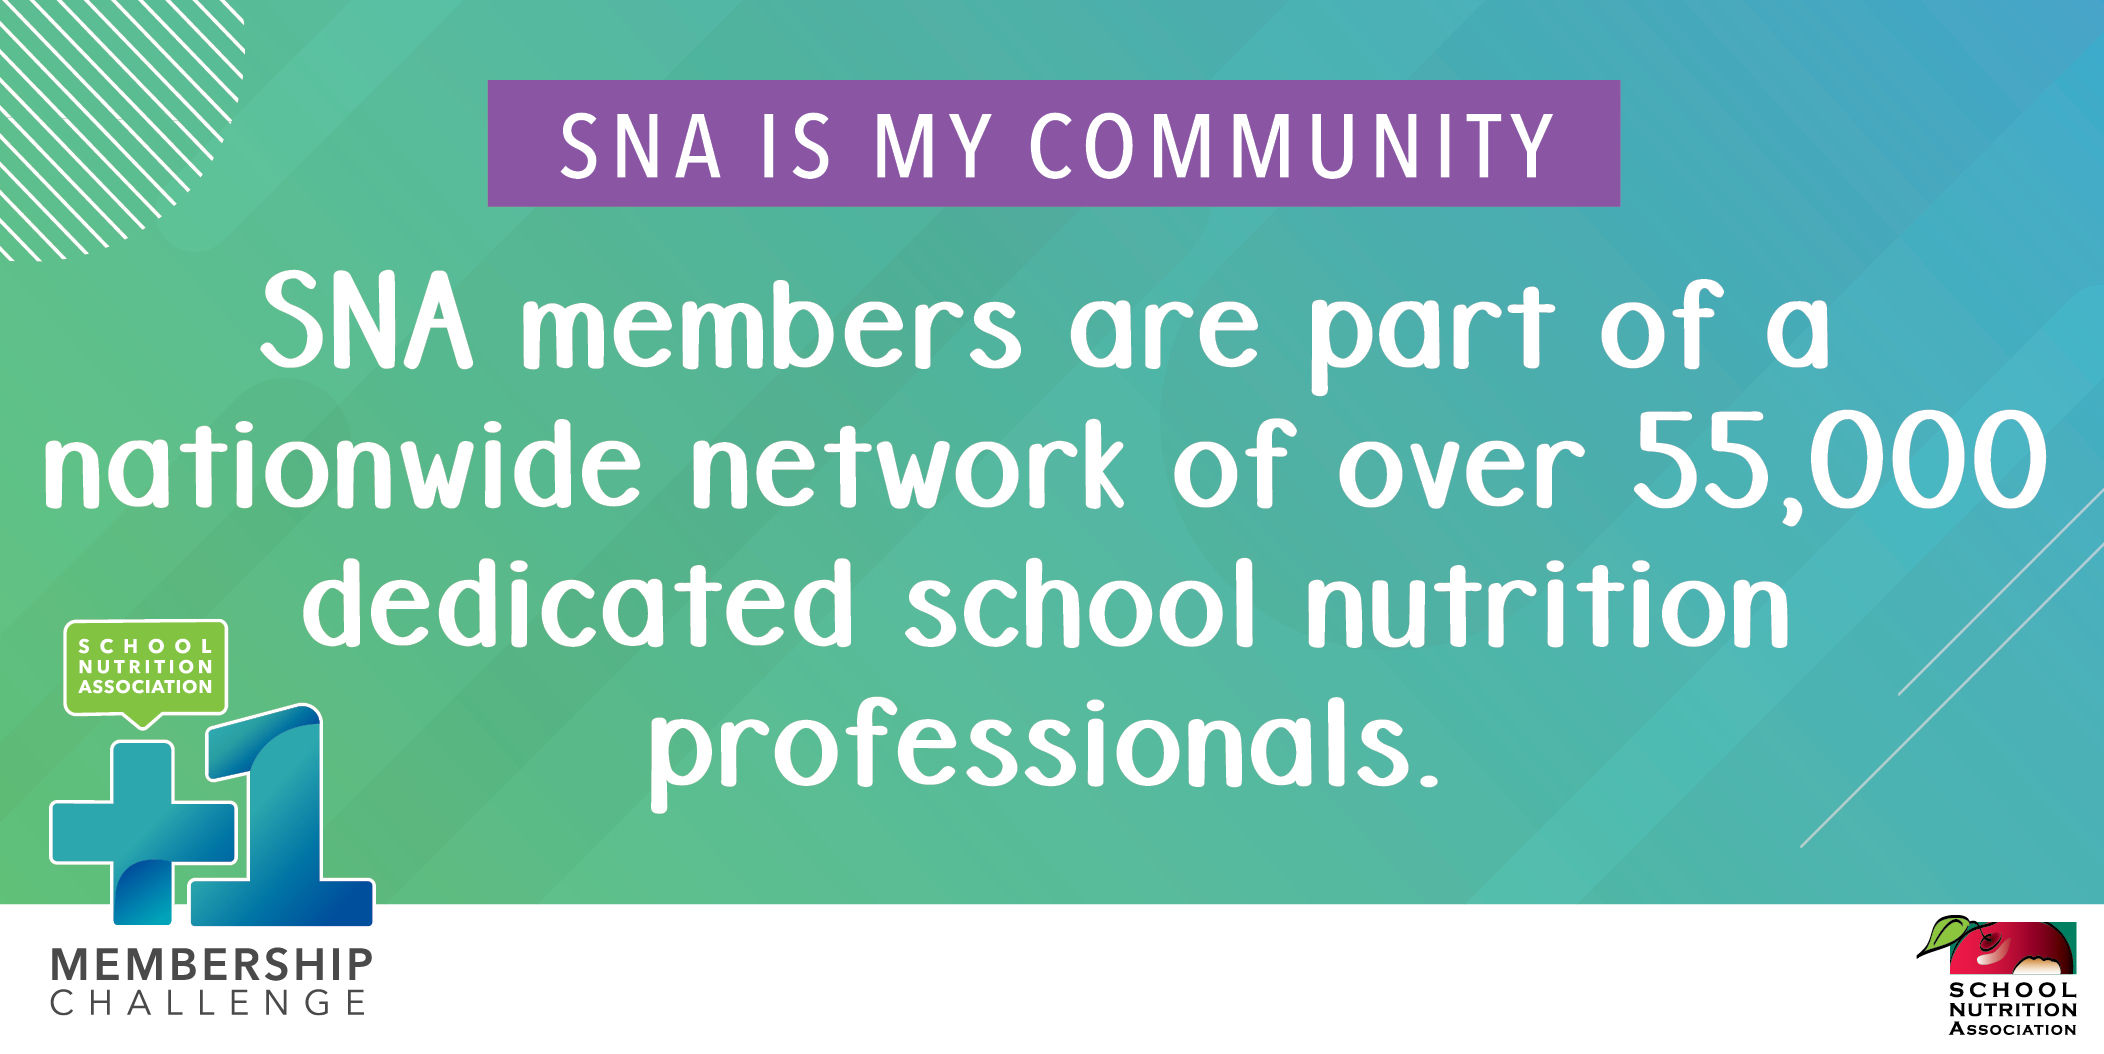 2-SNA-is-My-Community-Twitter